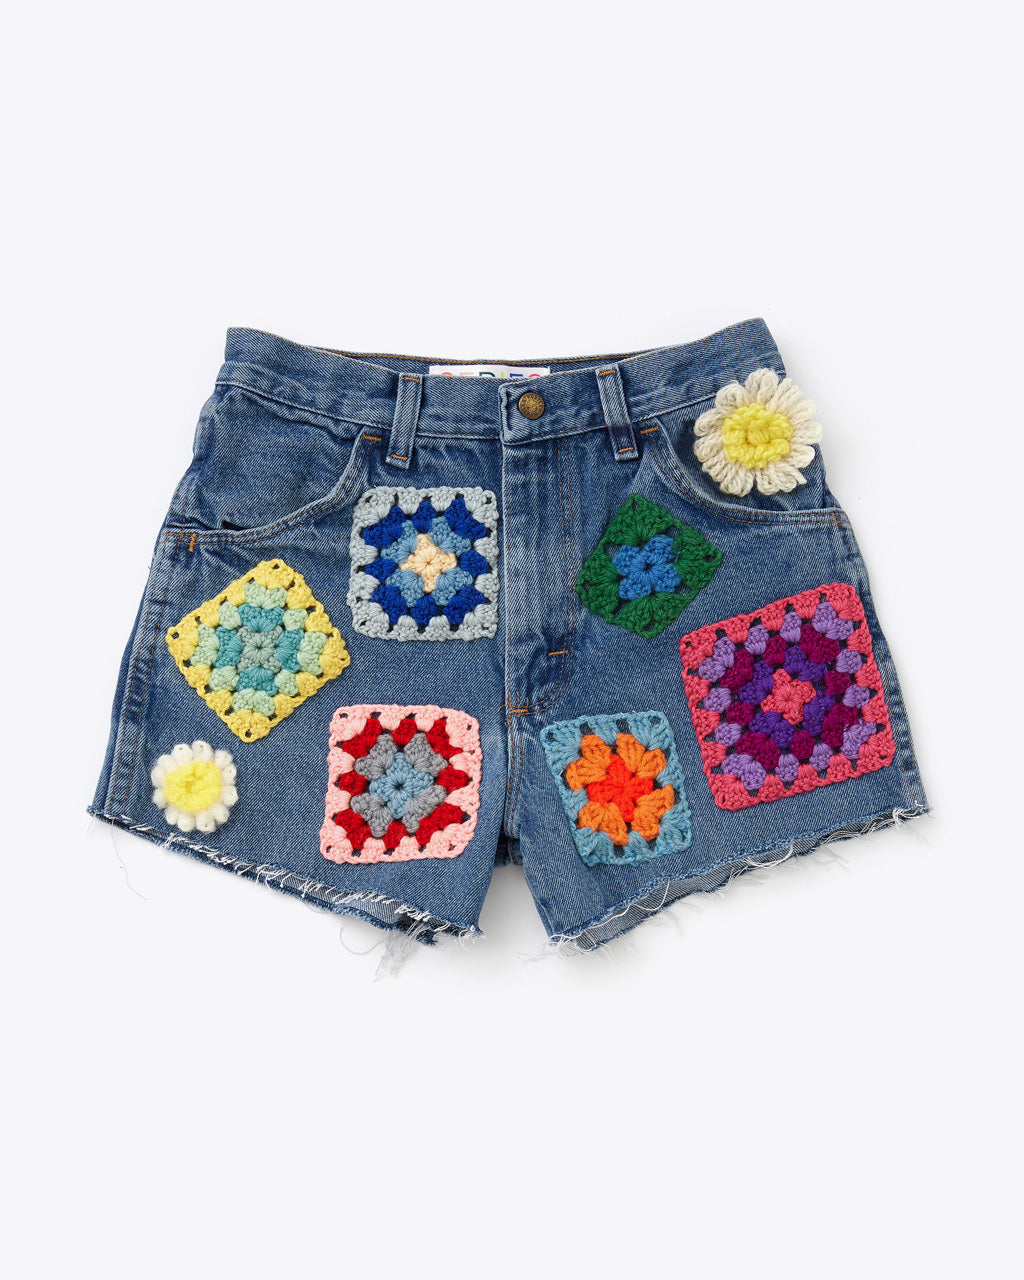 front side of medium wash denim cut off shorts with 6 multicolored crochet squares and 2 crochet flowers patched all over.